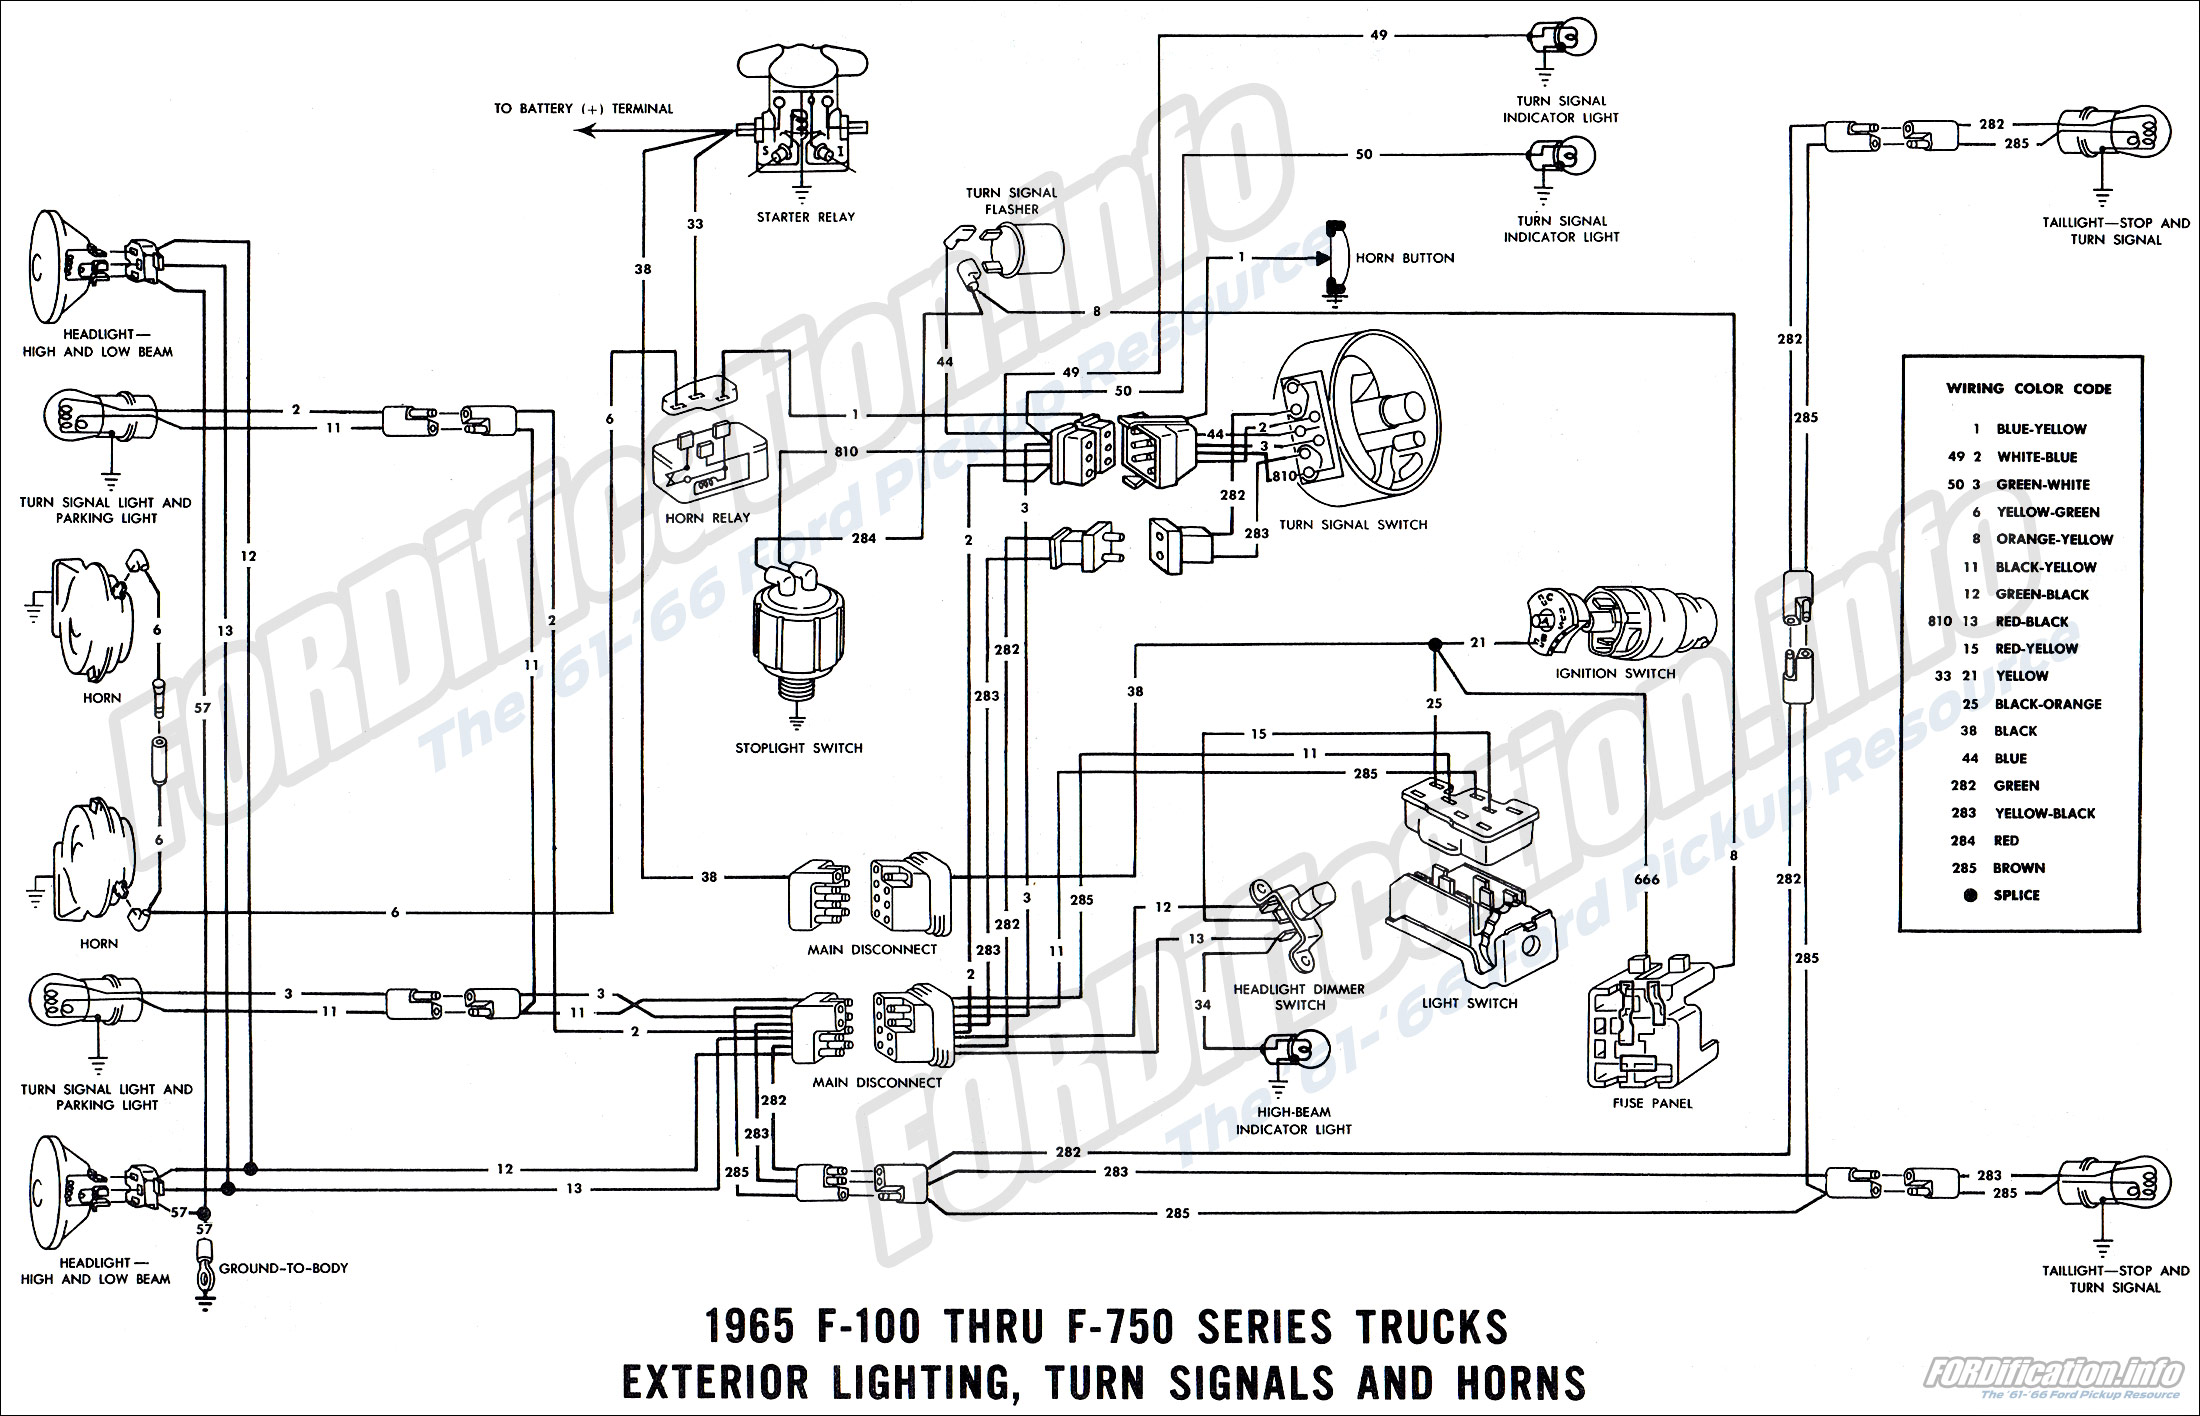 1966 Ford Truck F100 Wiring Diagram - Wiring Diagrams Hidden F Wiring Schematics on